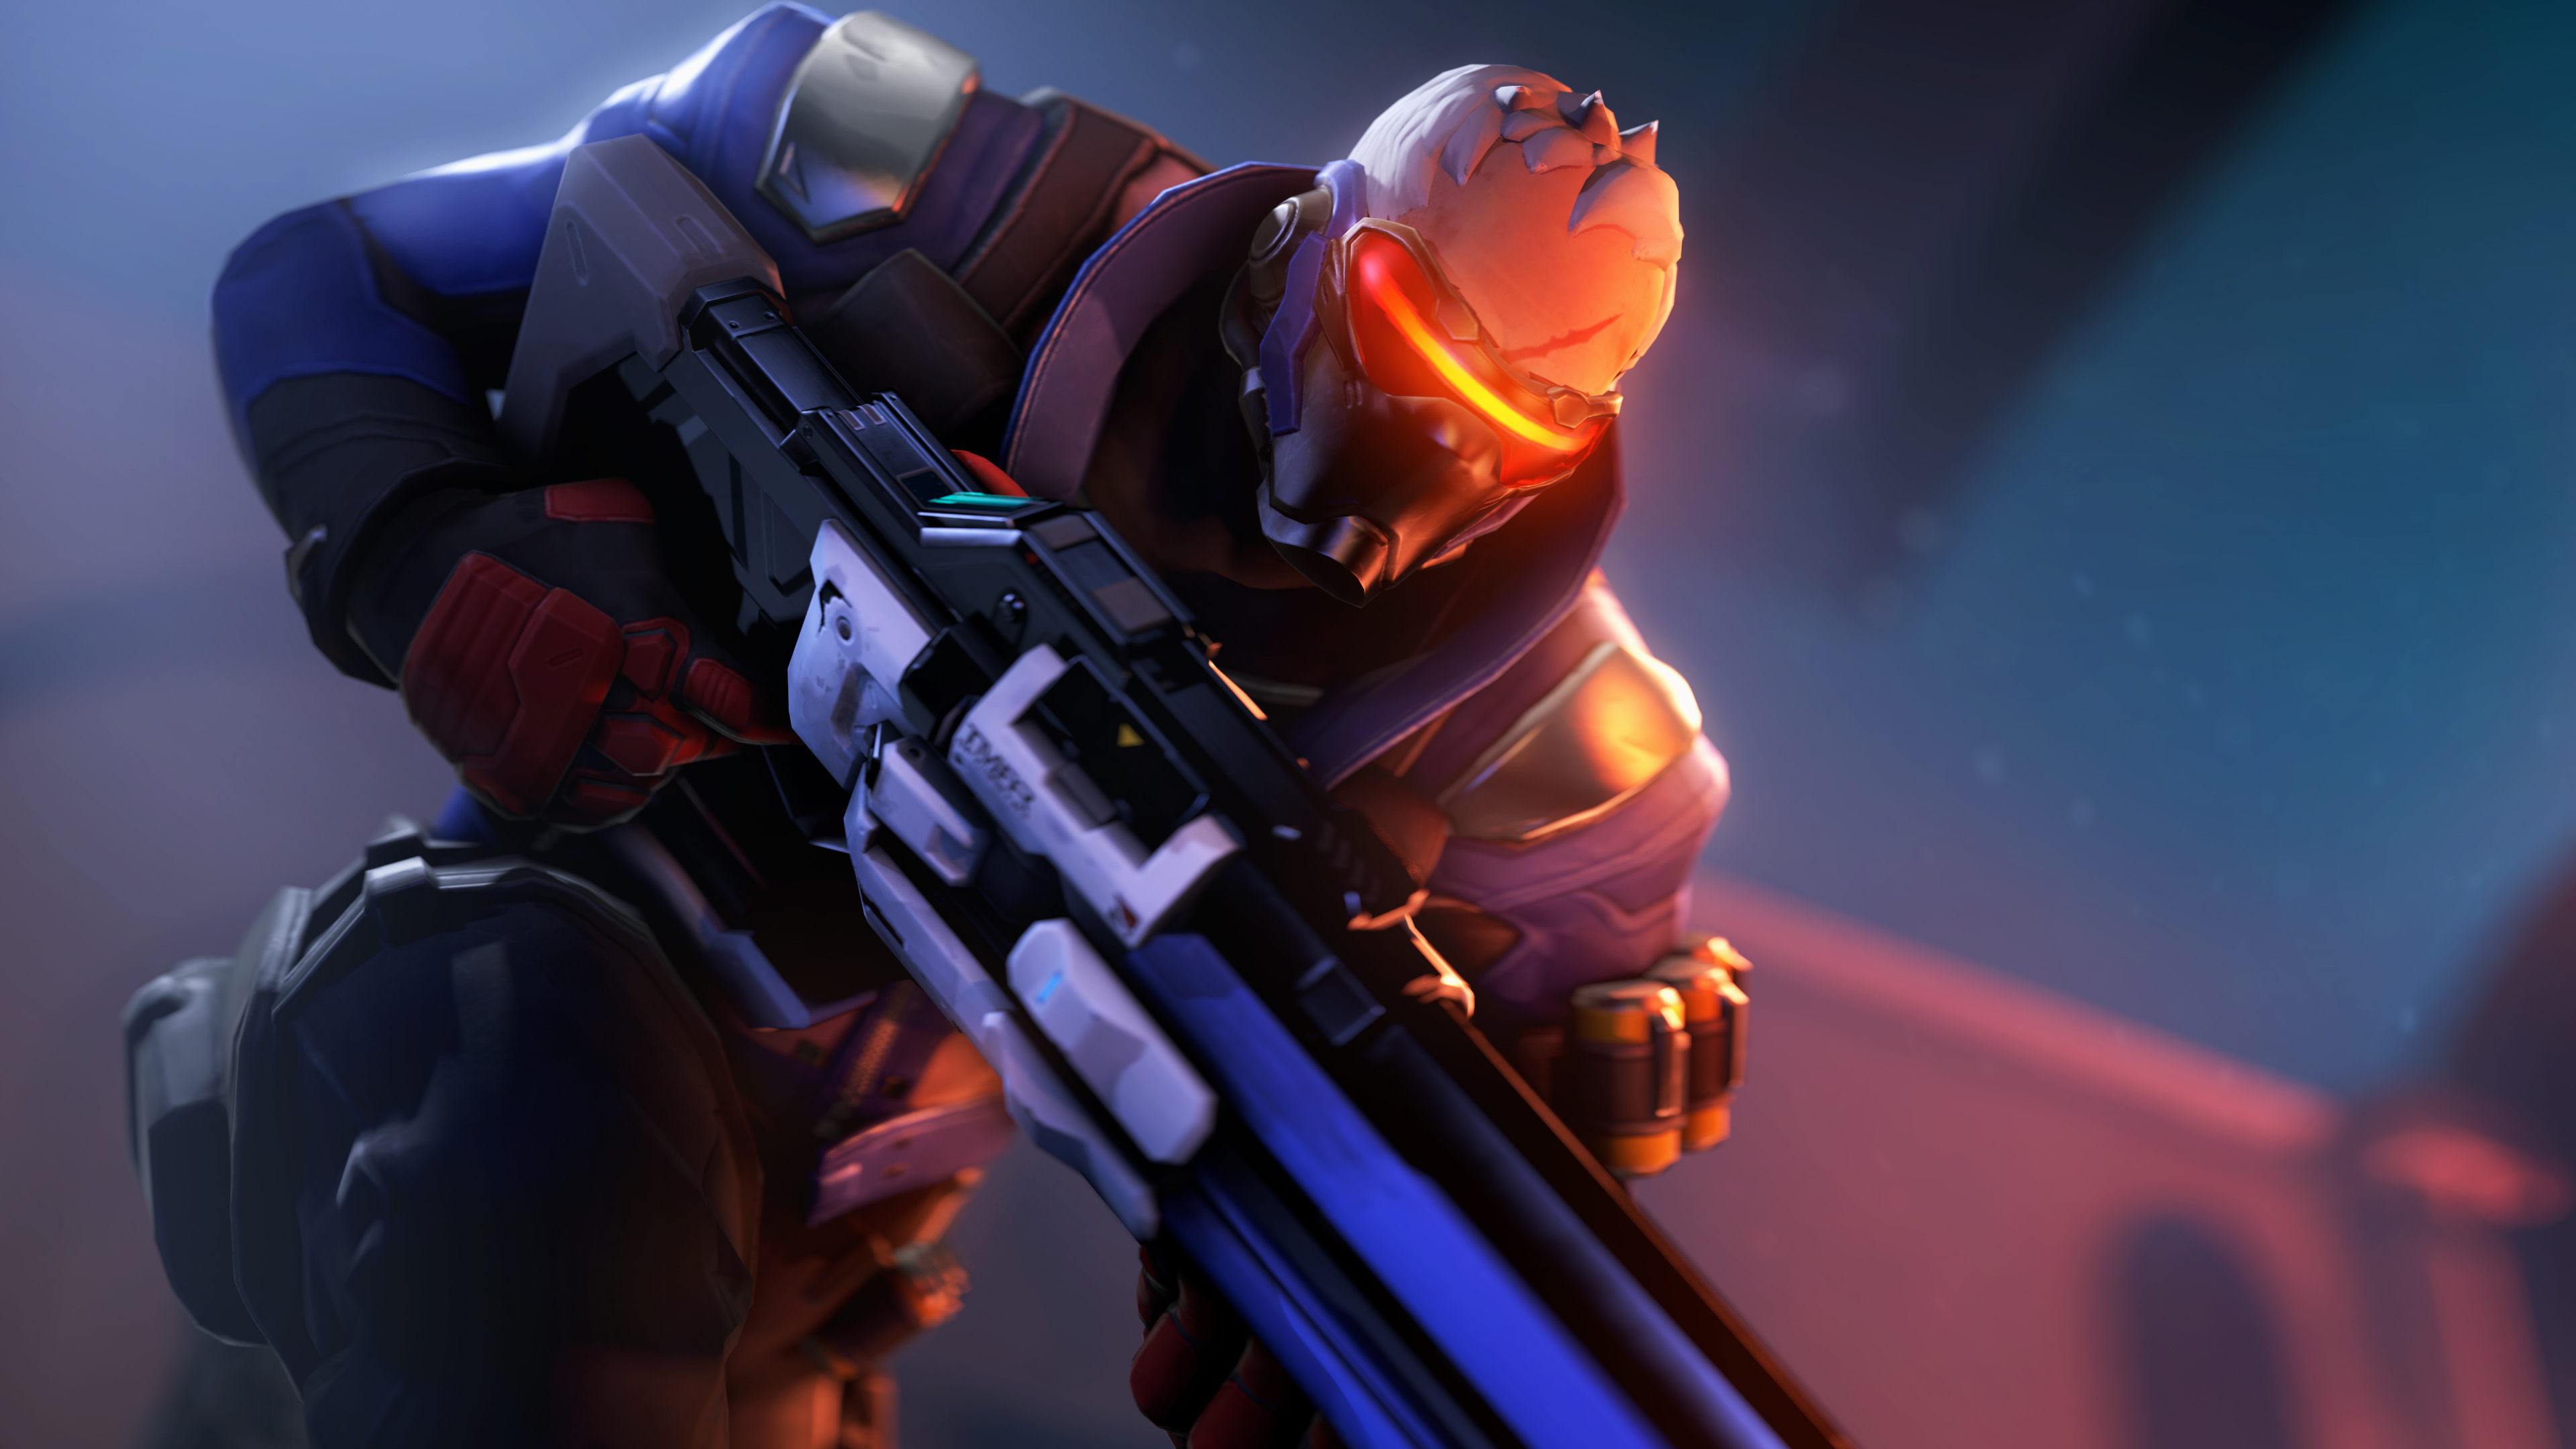 Overwatch Soldier 76 4k Wallpapers Hd Wallpapers